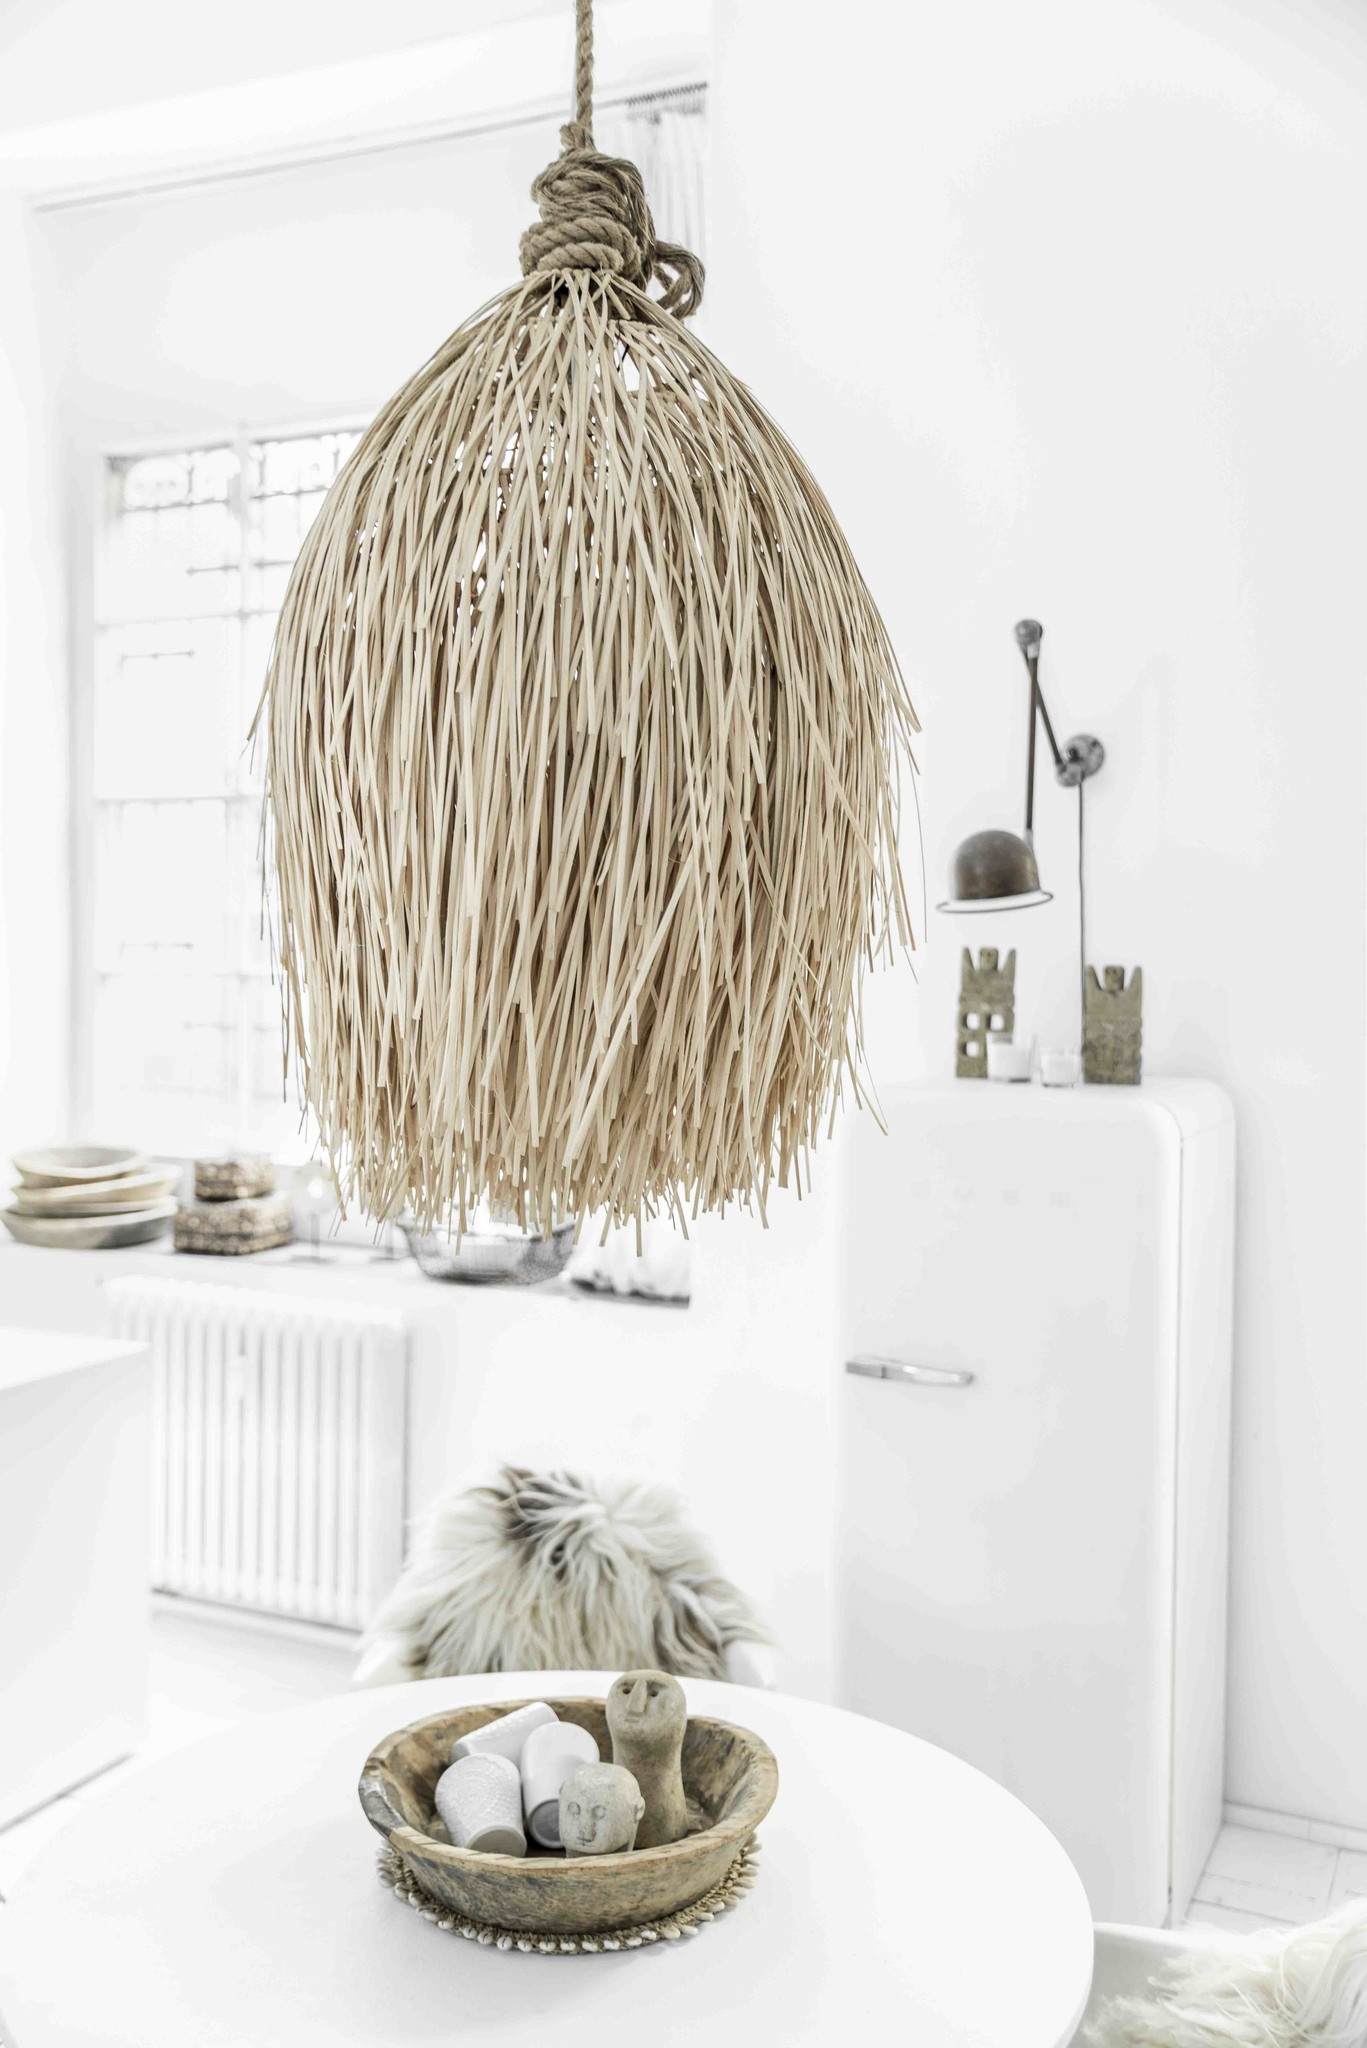 Petite Lily Interiors Suspension en rotin Shaggy - natural - Ø60xH90